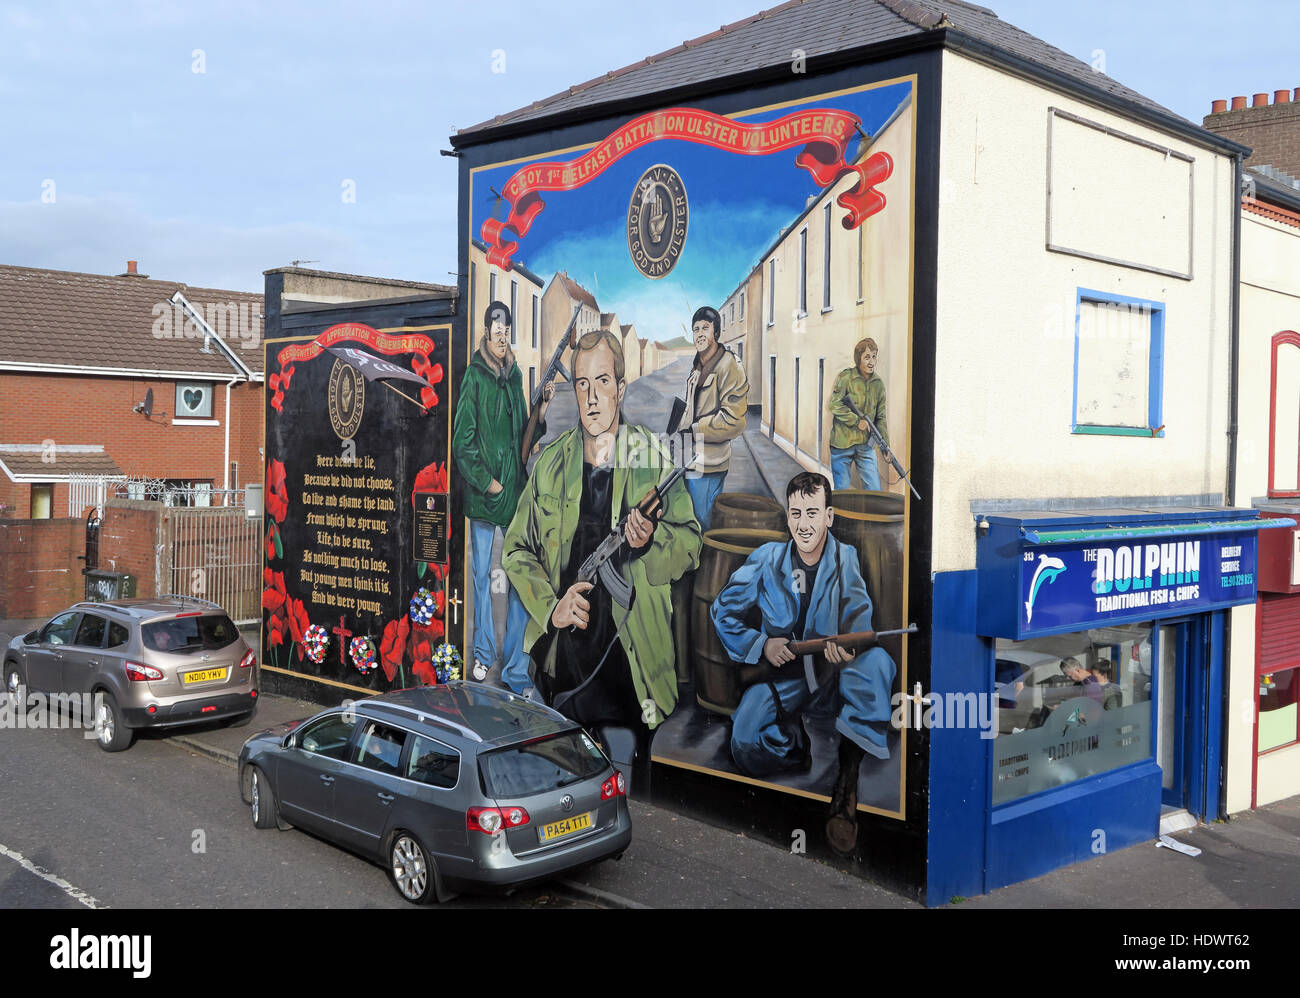 Red hand,Ulster,memorial,UFF,Unionist,mural,off,Shankill,rd,Road,West Belfast,Northern Ireland,UK,Ireland,fighter,fighting,vols,volunteers,UVF,memorial,Ulster Volunteers,GoTonySmith,@HotpixUK,Tony,Smith,UK,GB,Great,Britain,United,Kingdom,Irish,British,Ireland,problem,with,problem with,issue with,NI,Northern,Northern Ireland,Belfast,City,Centre,Art,Artists,the,troubles,The Troubles,Good Friday Agreement,Peace,honour,painting,wall,walls,tribute,Unionist,unionism,Protestant,community,Fight,Justice,West,Beal,feirste,martyrs,social,tour,tourism,tourists,urban,six,counties,6,backdrop,county,Antrim,UVF,DUP,British,GB,Empire,Buy Pictures of,Buy Images Of,Images of,Stock Images,Tony Smith,United Kingdom,Great Britain,British Isles,Belfast protestant community,Peoples army